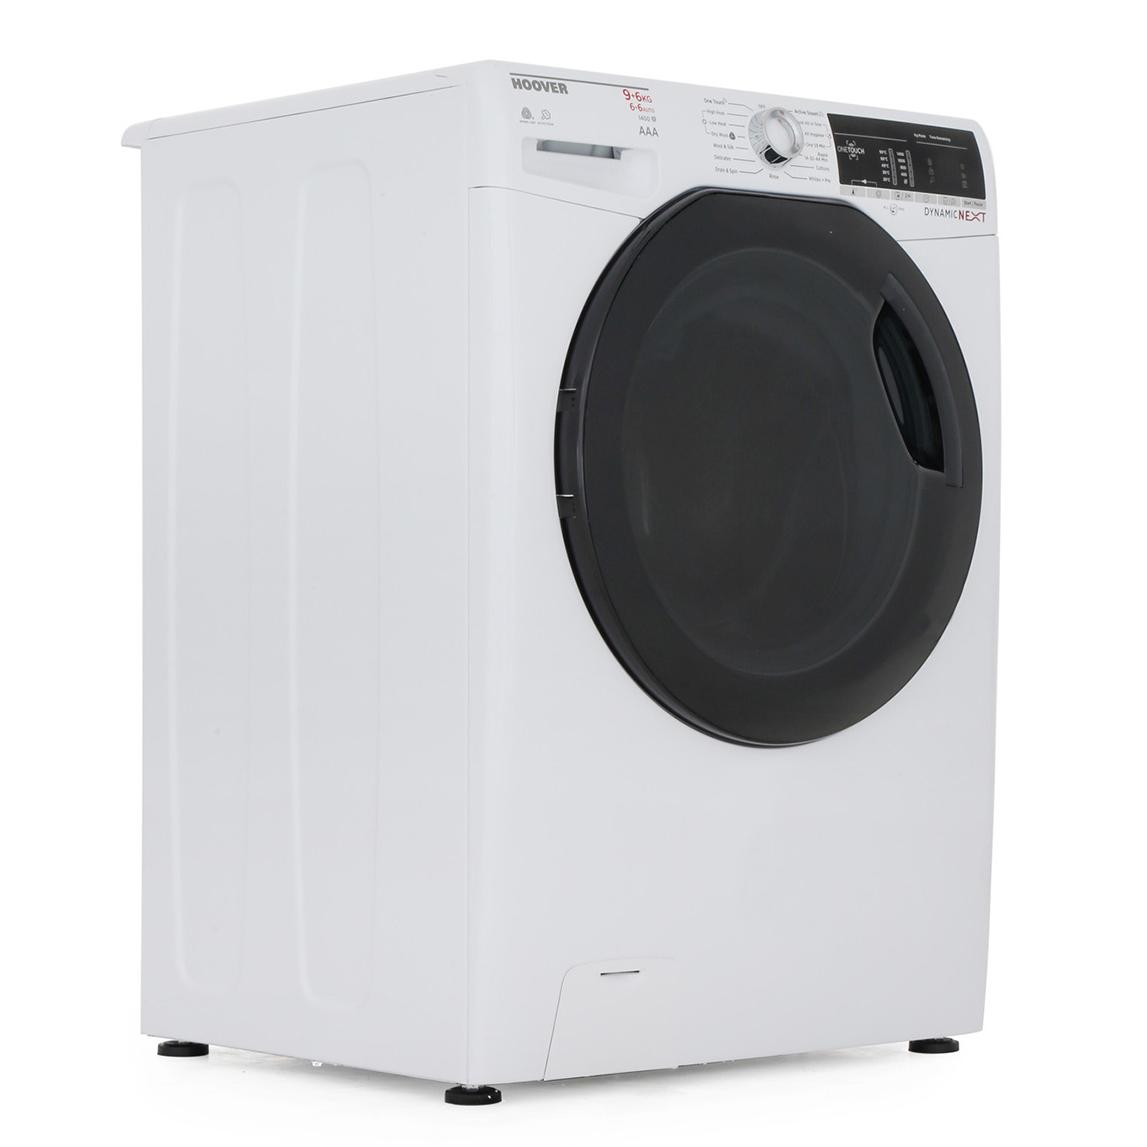 Hoover WDXOA496AF Washer Dryer